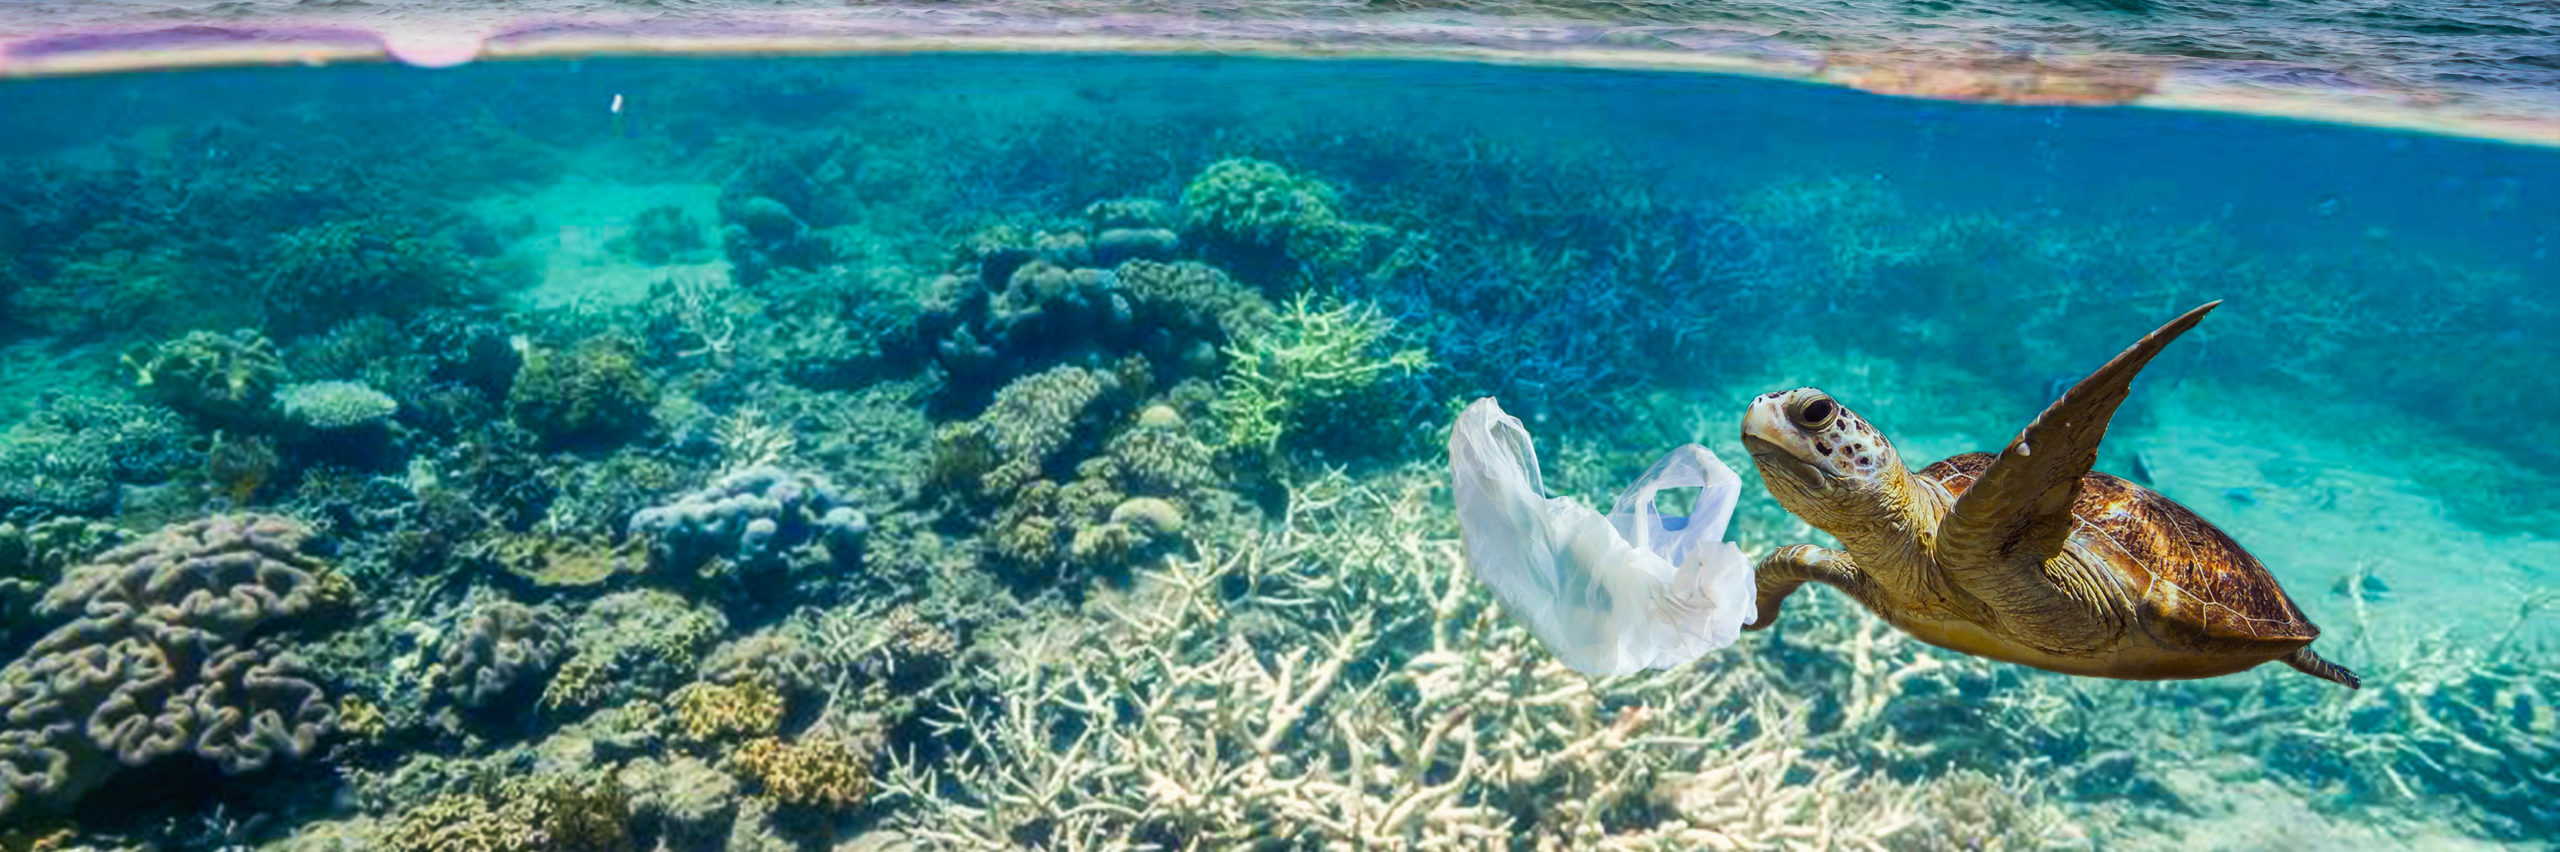 Drifting plastic bag and a turtle - Image [Shutterstock]